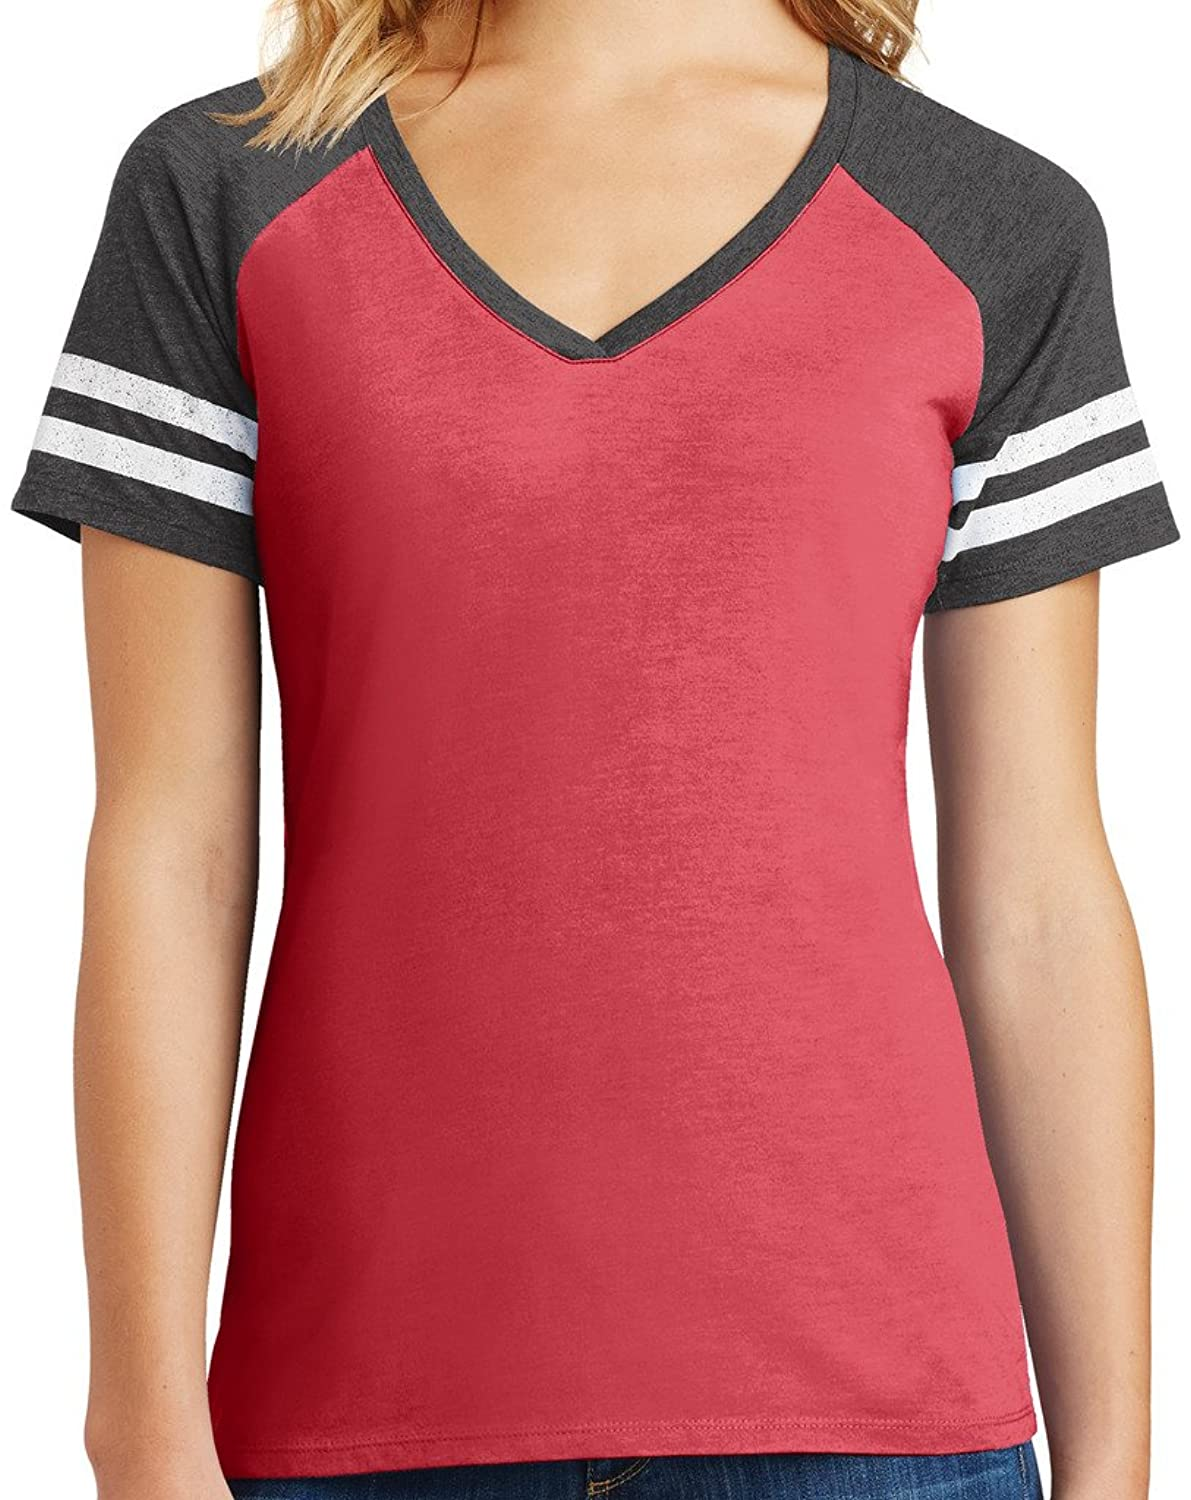 Ladies Game V-neck Tee, 4XL Heathered Red/Heathered Charcoal